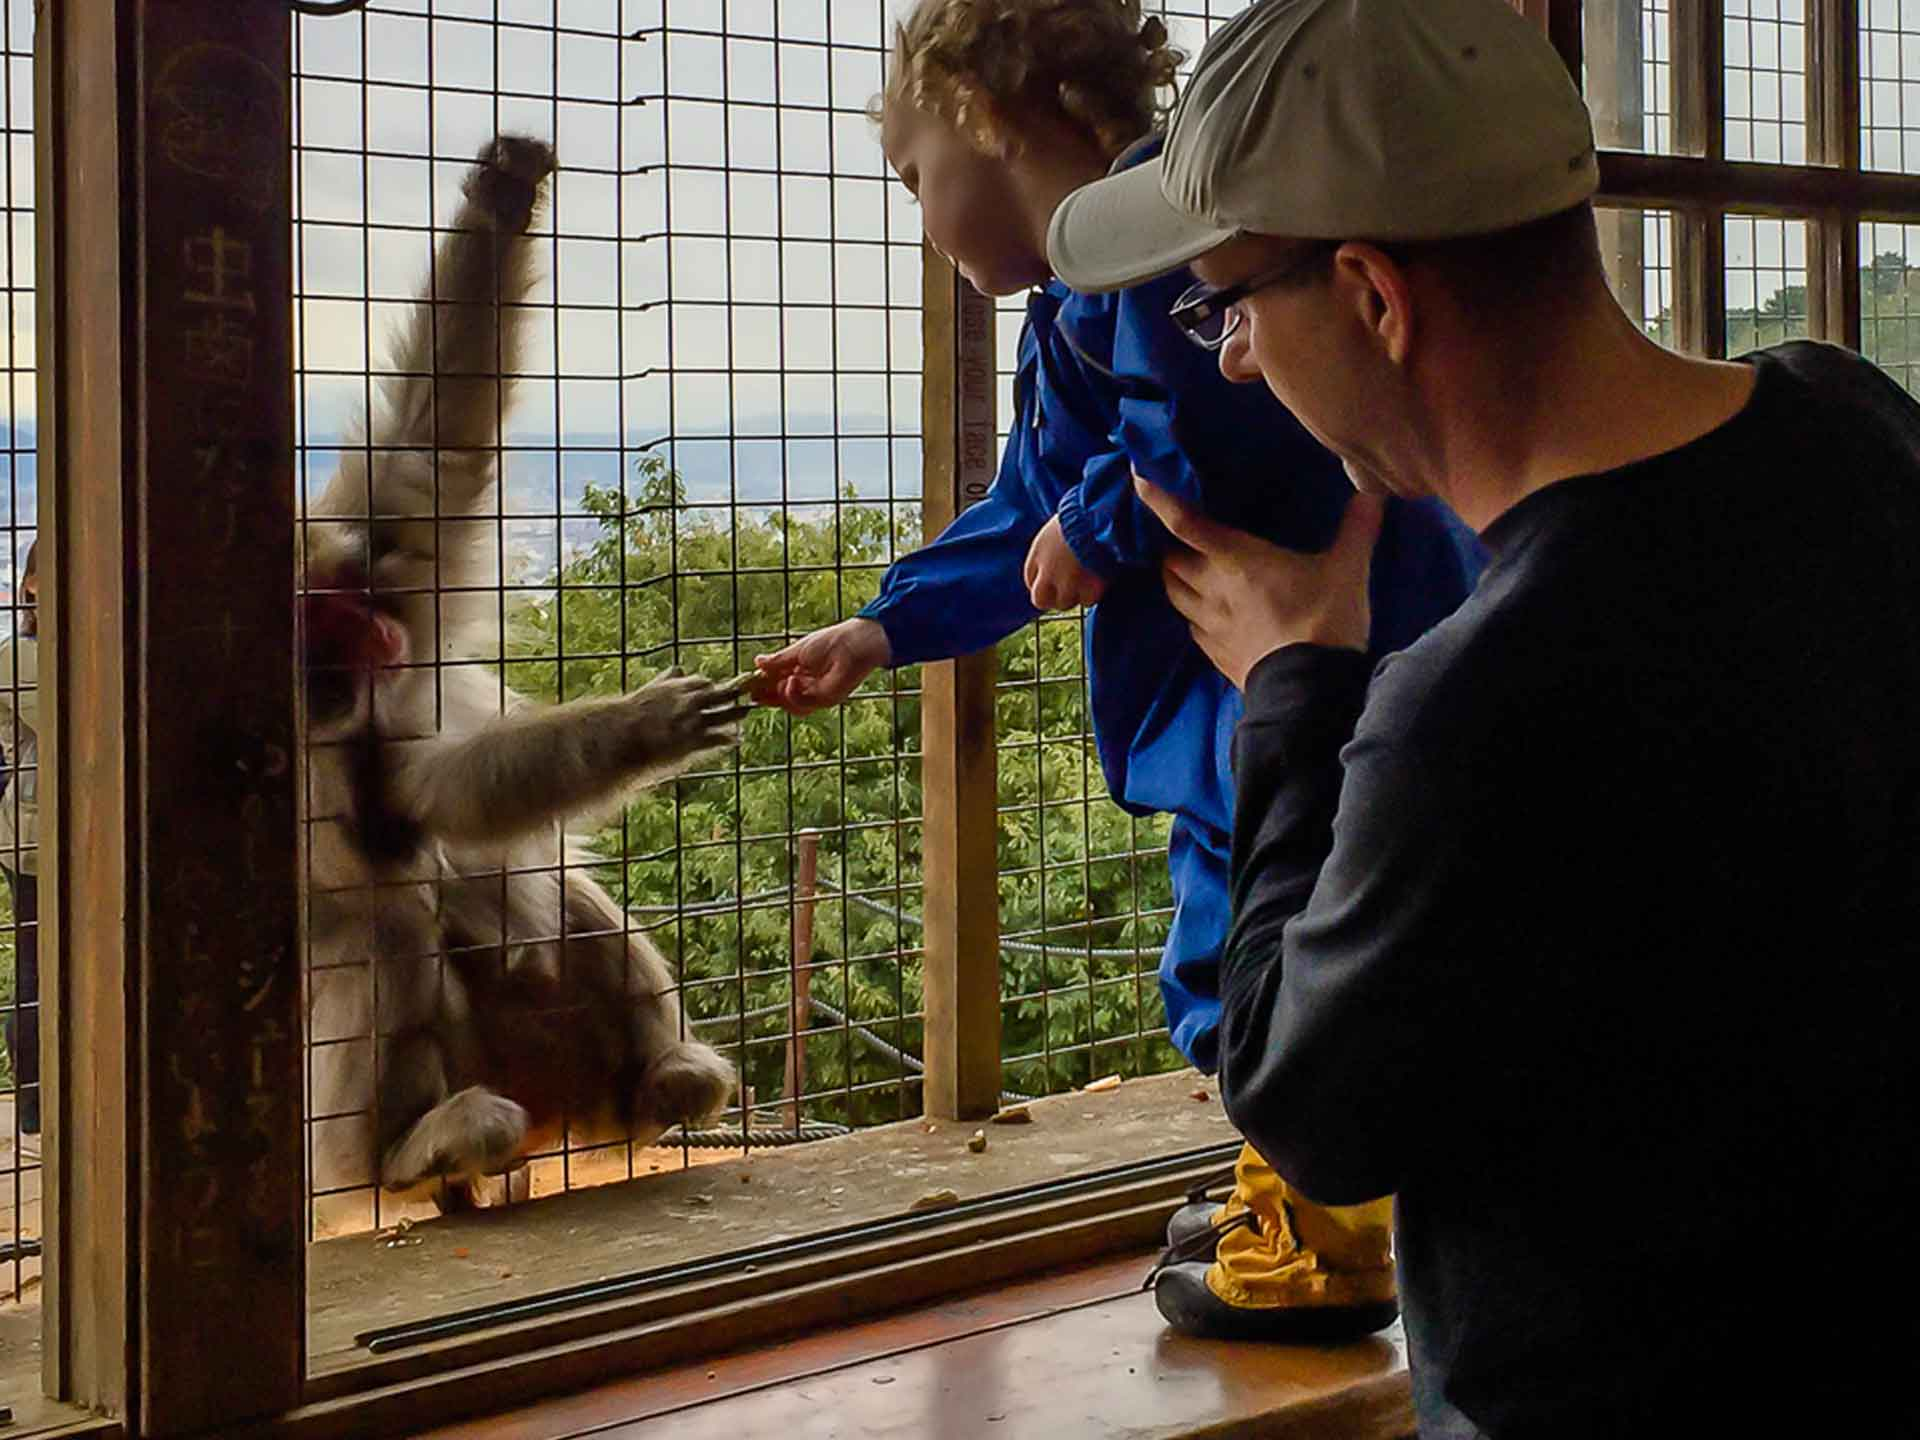 A toddler feeds a monkey at Kyoto's Monkey Park Iwatayama